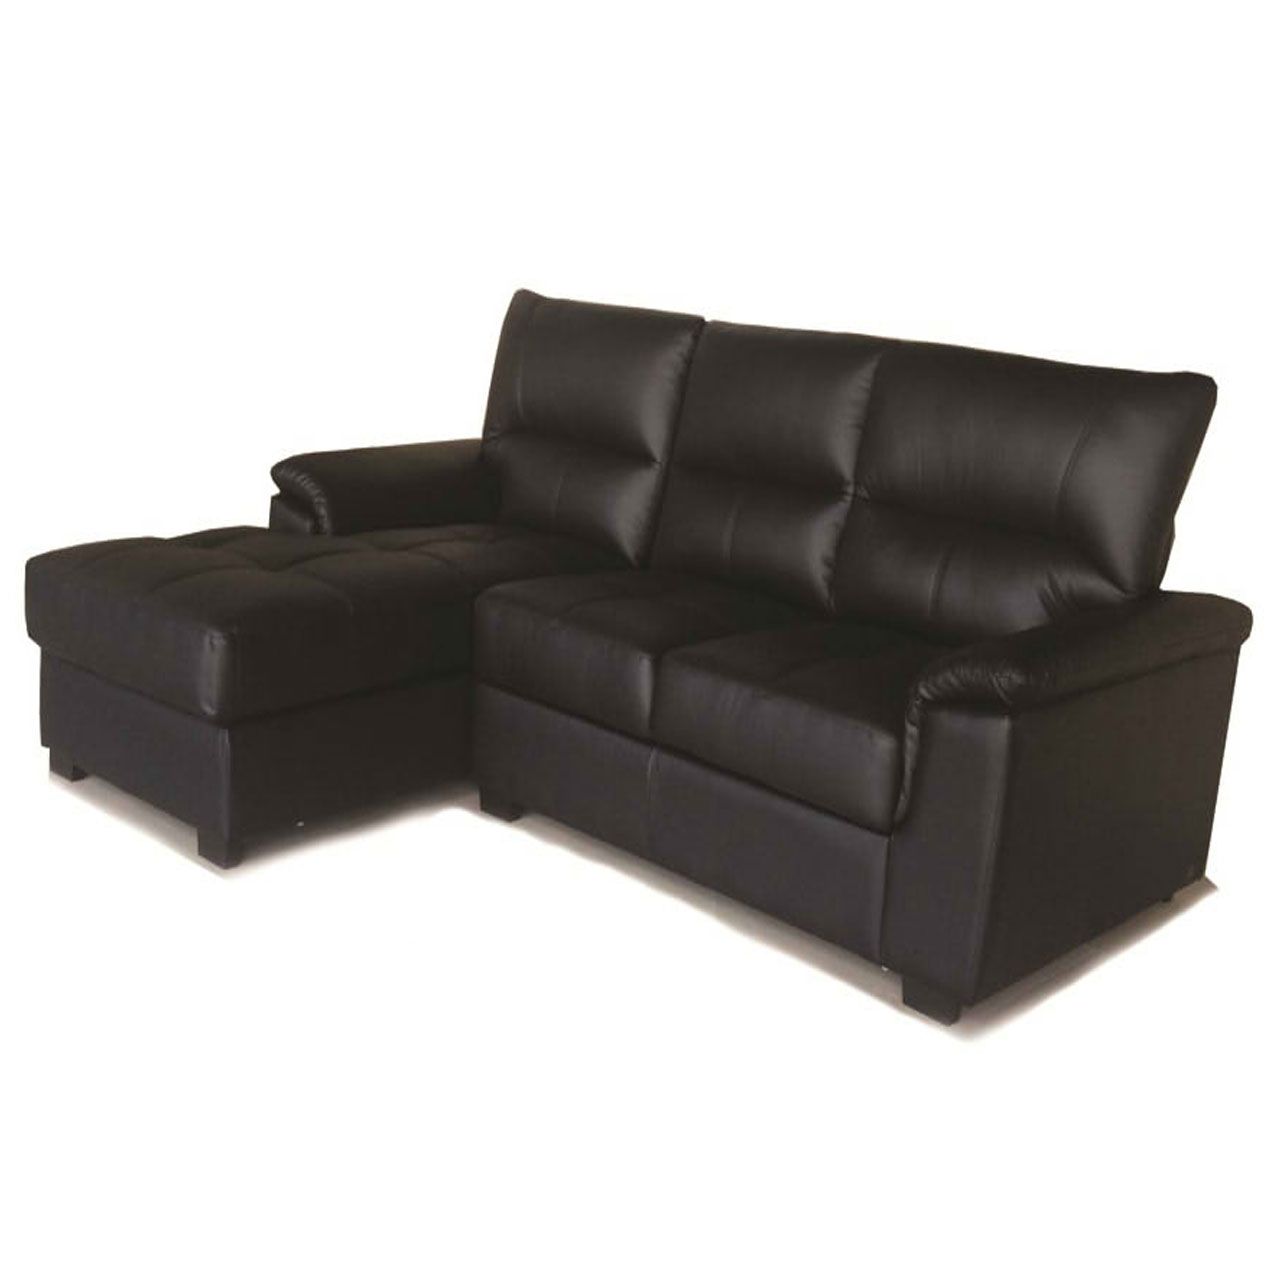 Sofa set price in philippines full set of sofa for philippines find 2nd hand used thesofa Affordable home furnitures philippines